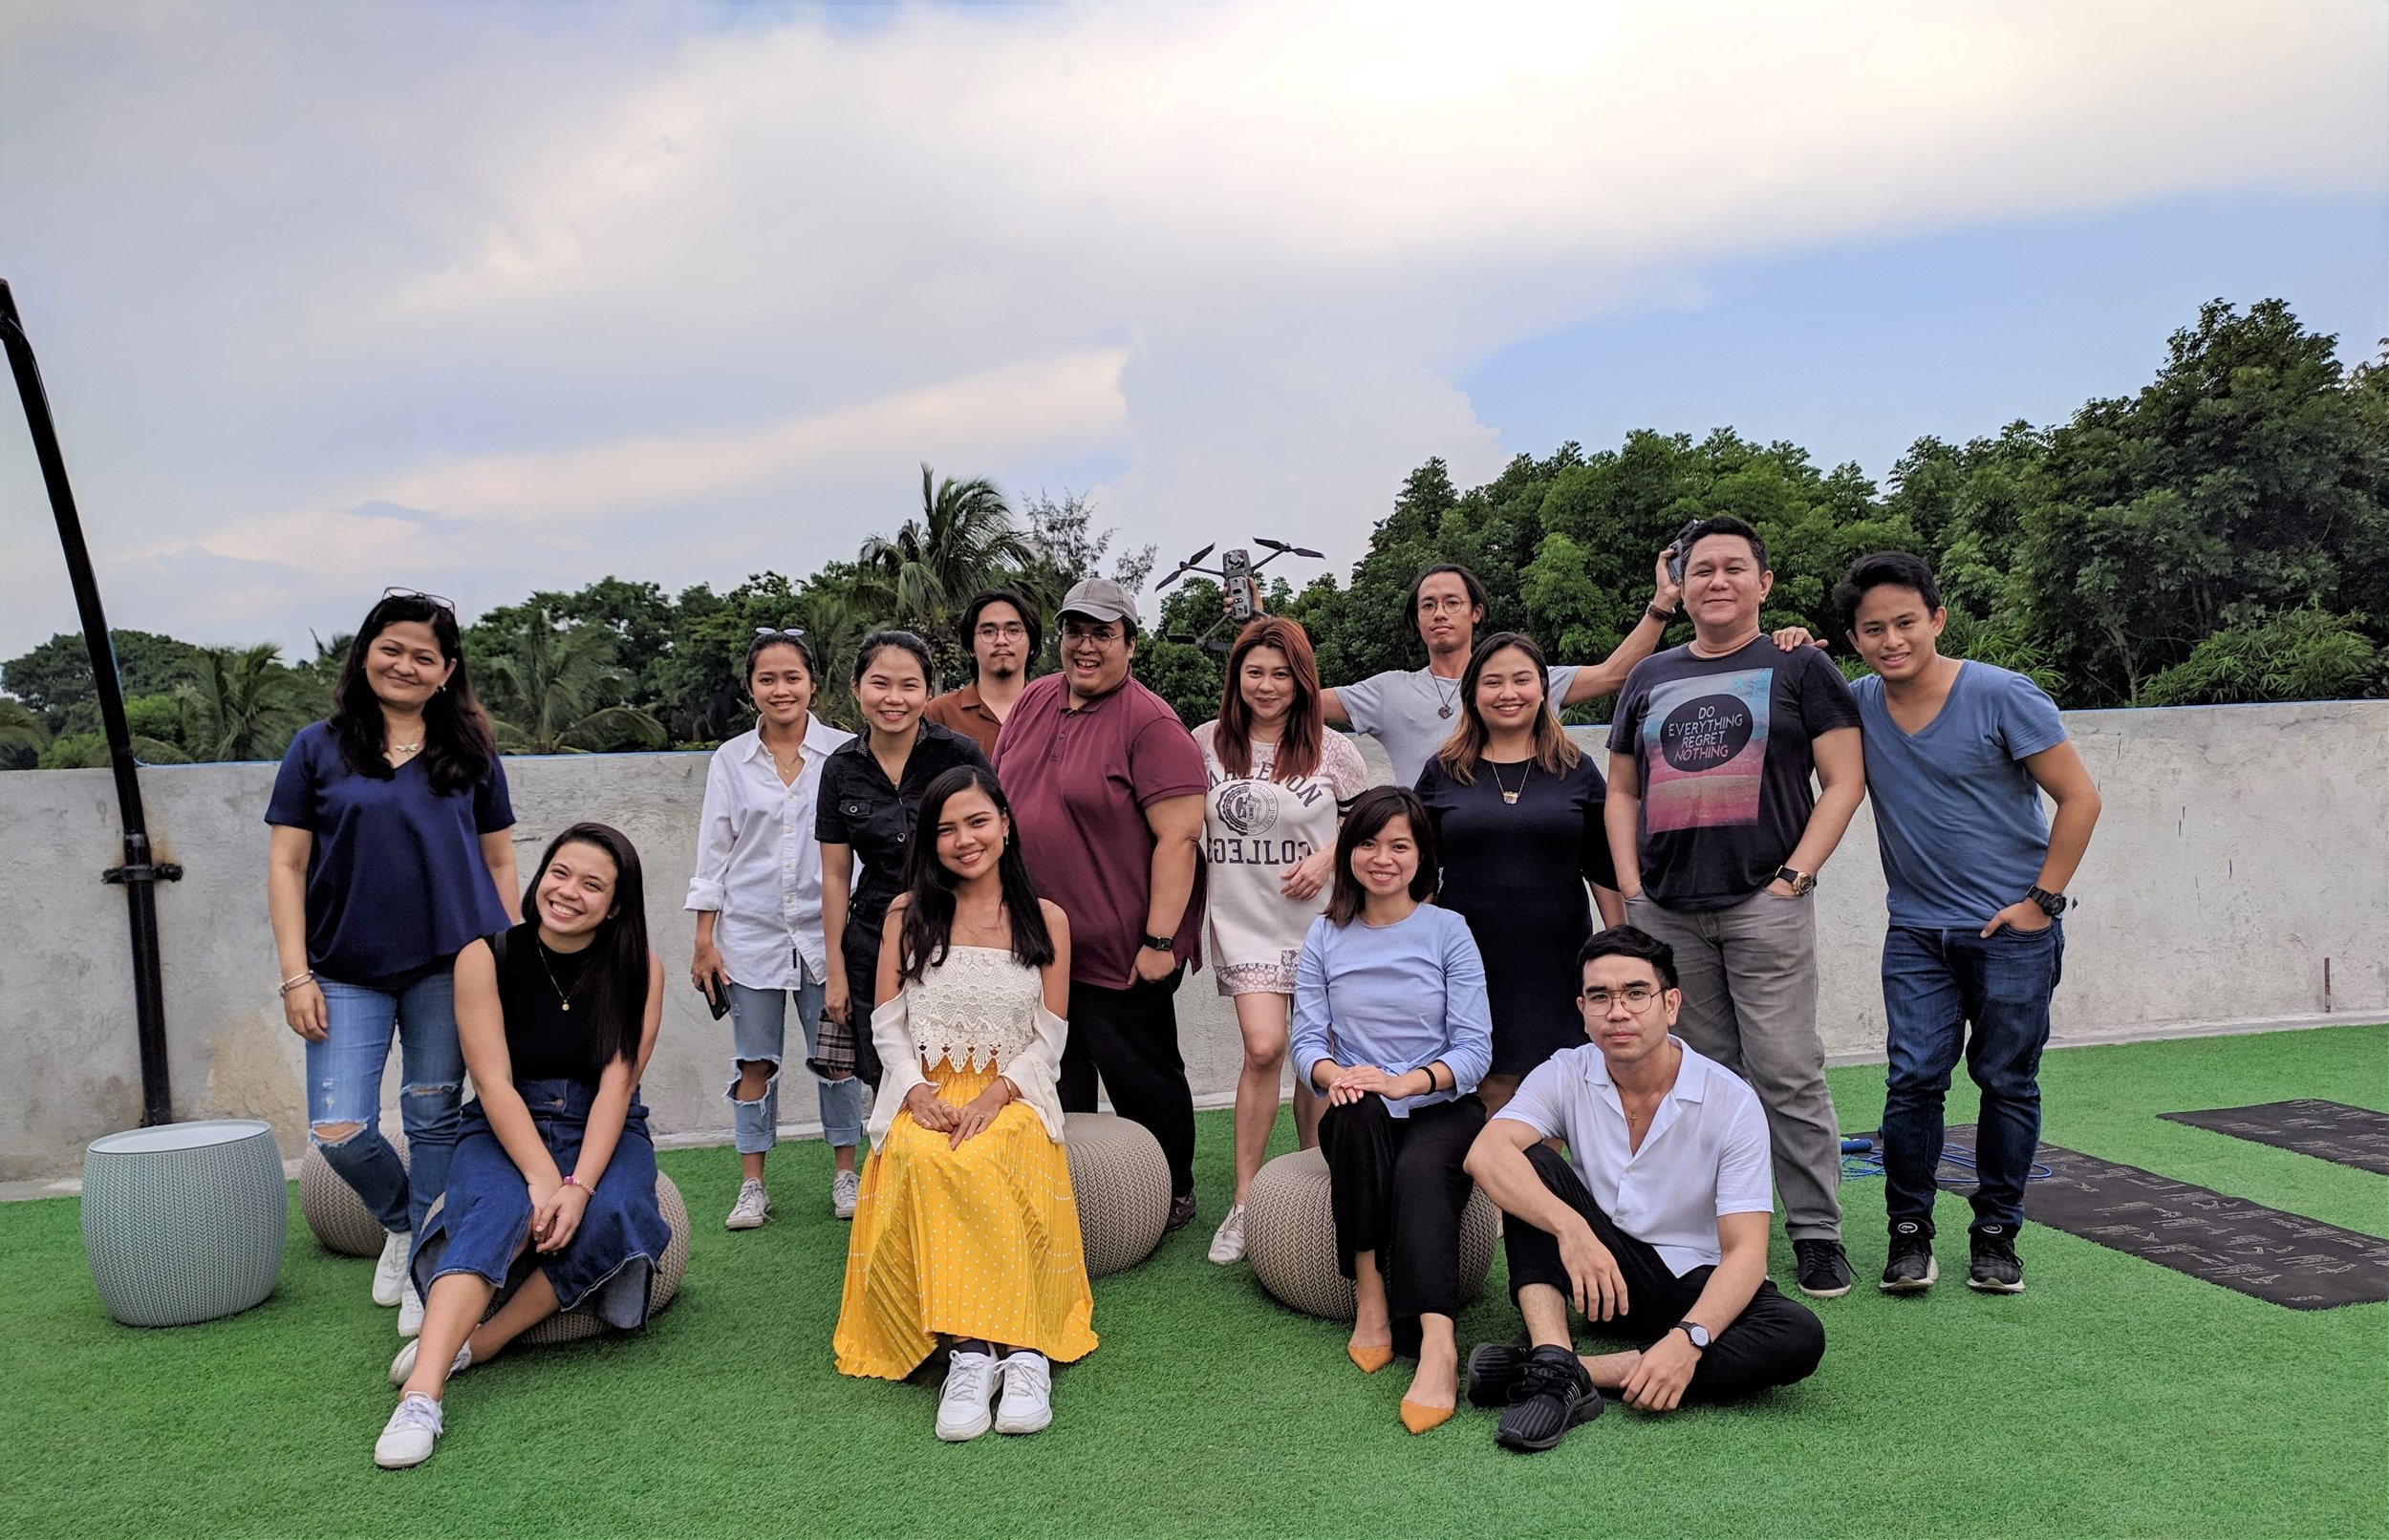 Eco Hotel Philippines May 2019 Bloggers Day Event. Photo: Eco Hotel Philippines